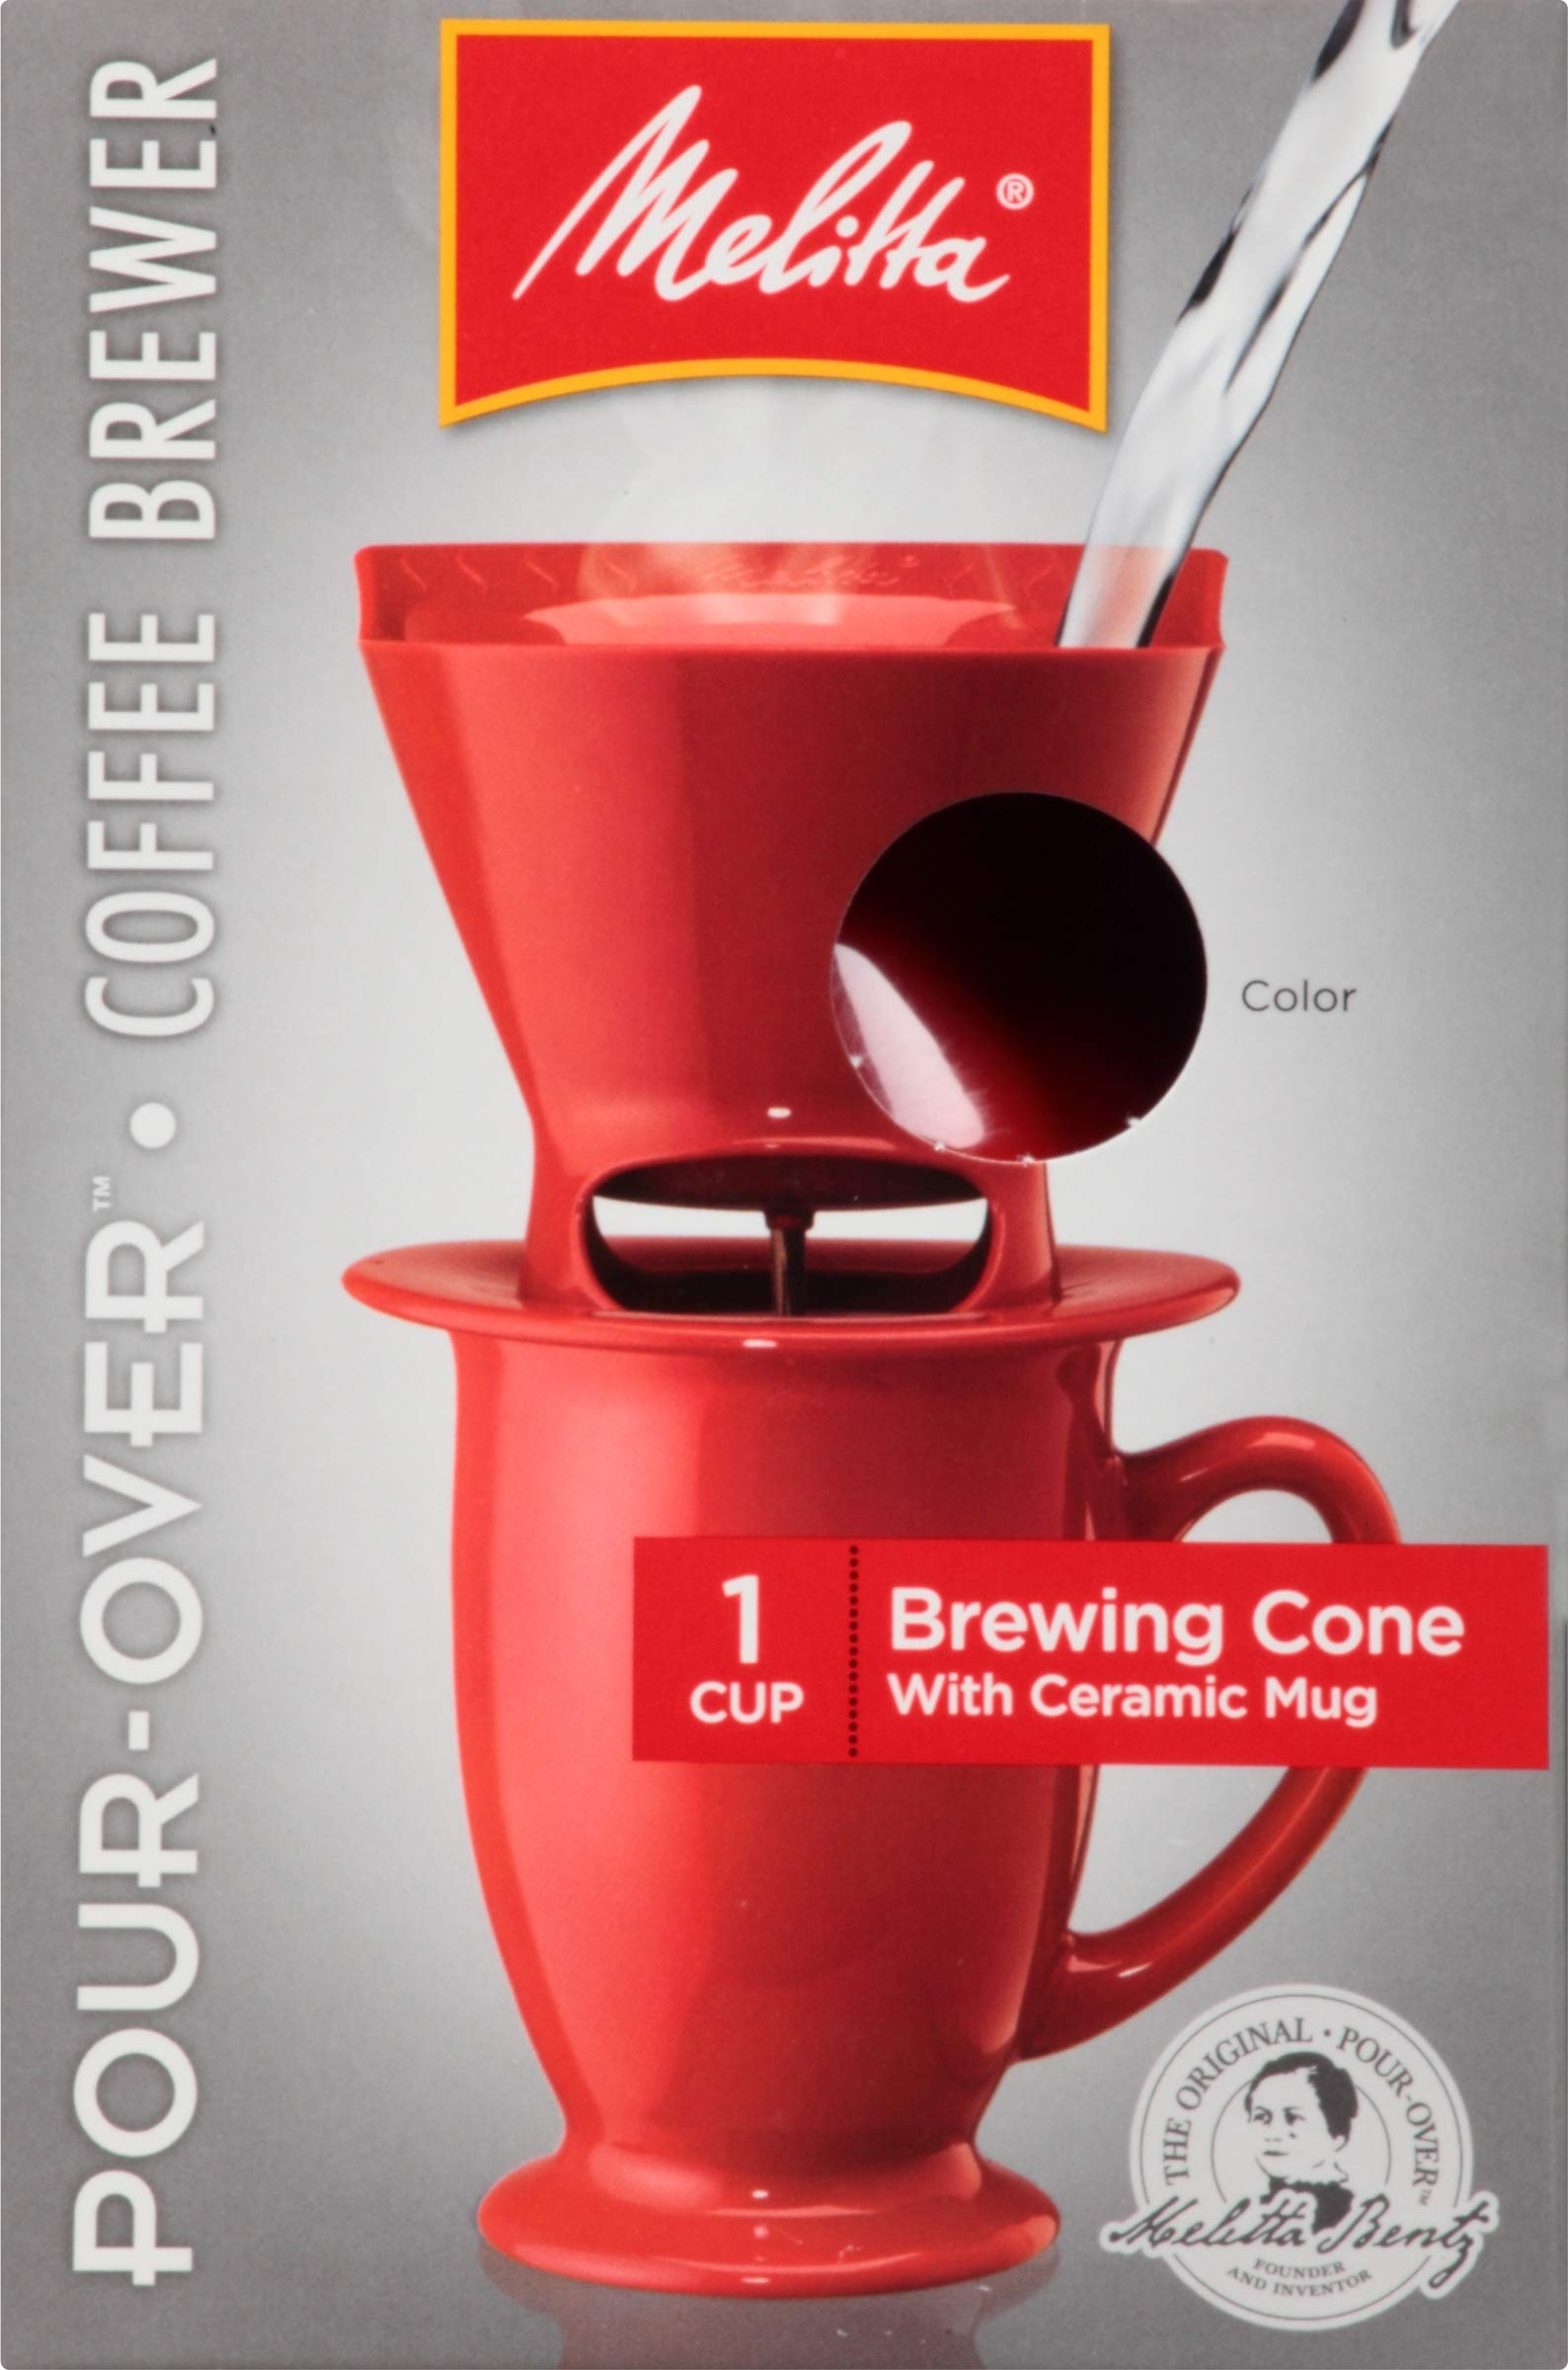 Melitta Single Cup Pour-Over Coffeemaker with Red Brewing Cone & Ceramic Mug (Pack of 4) by Melitta